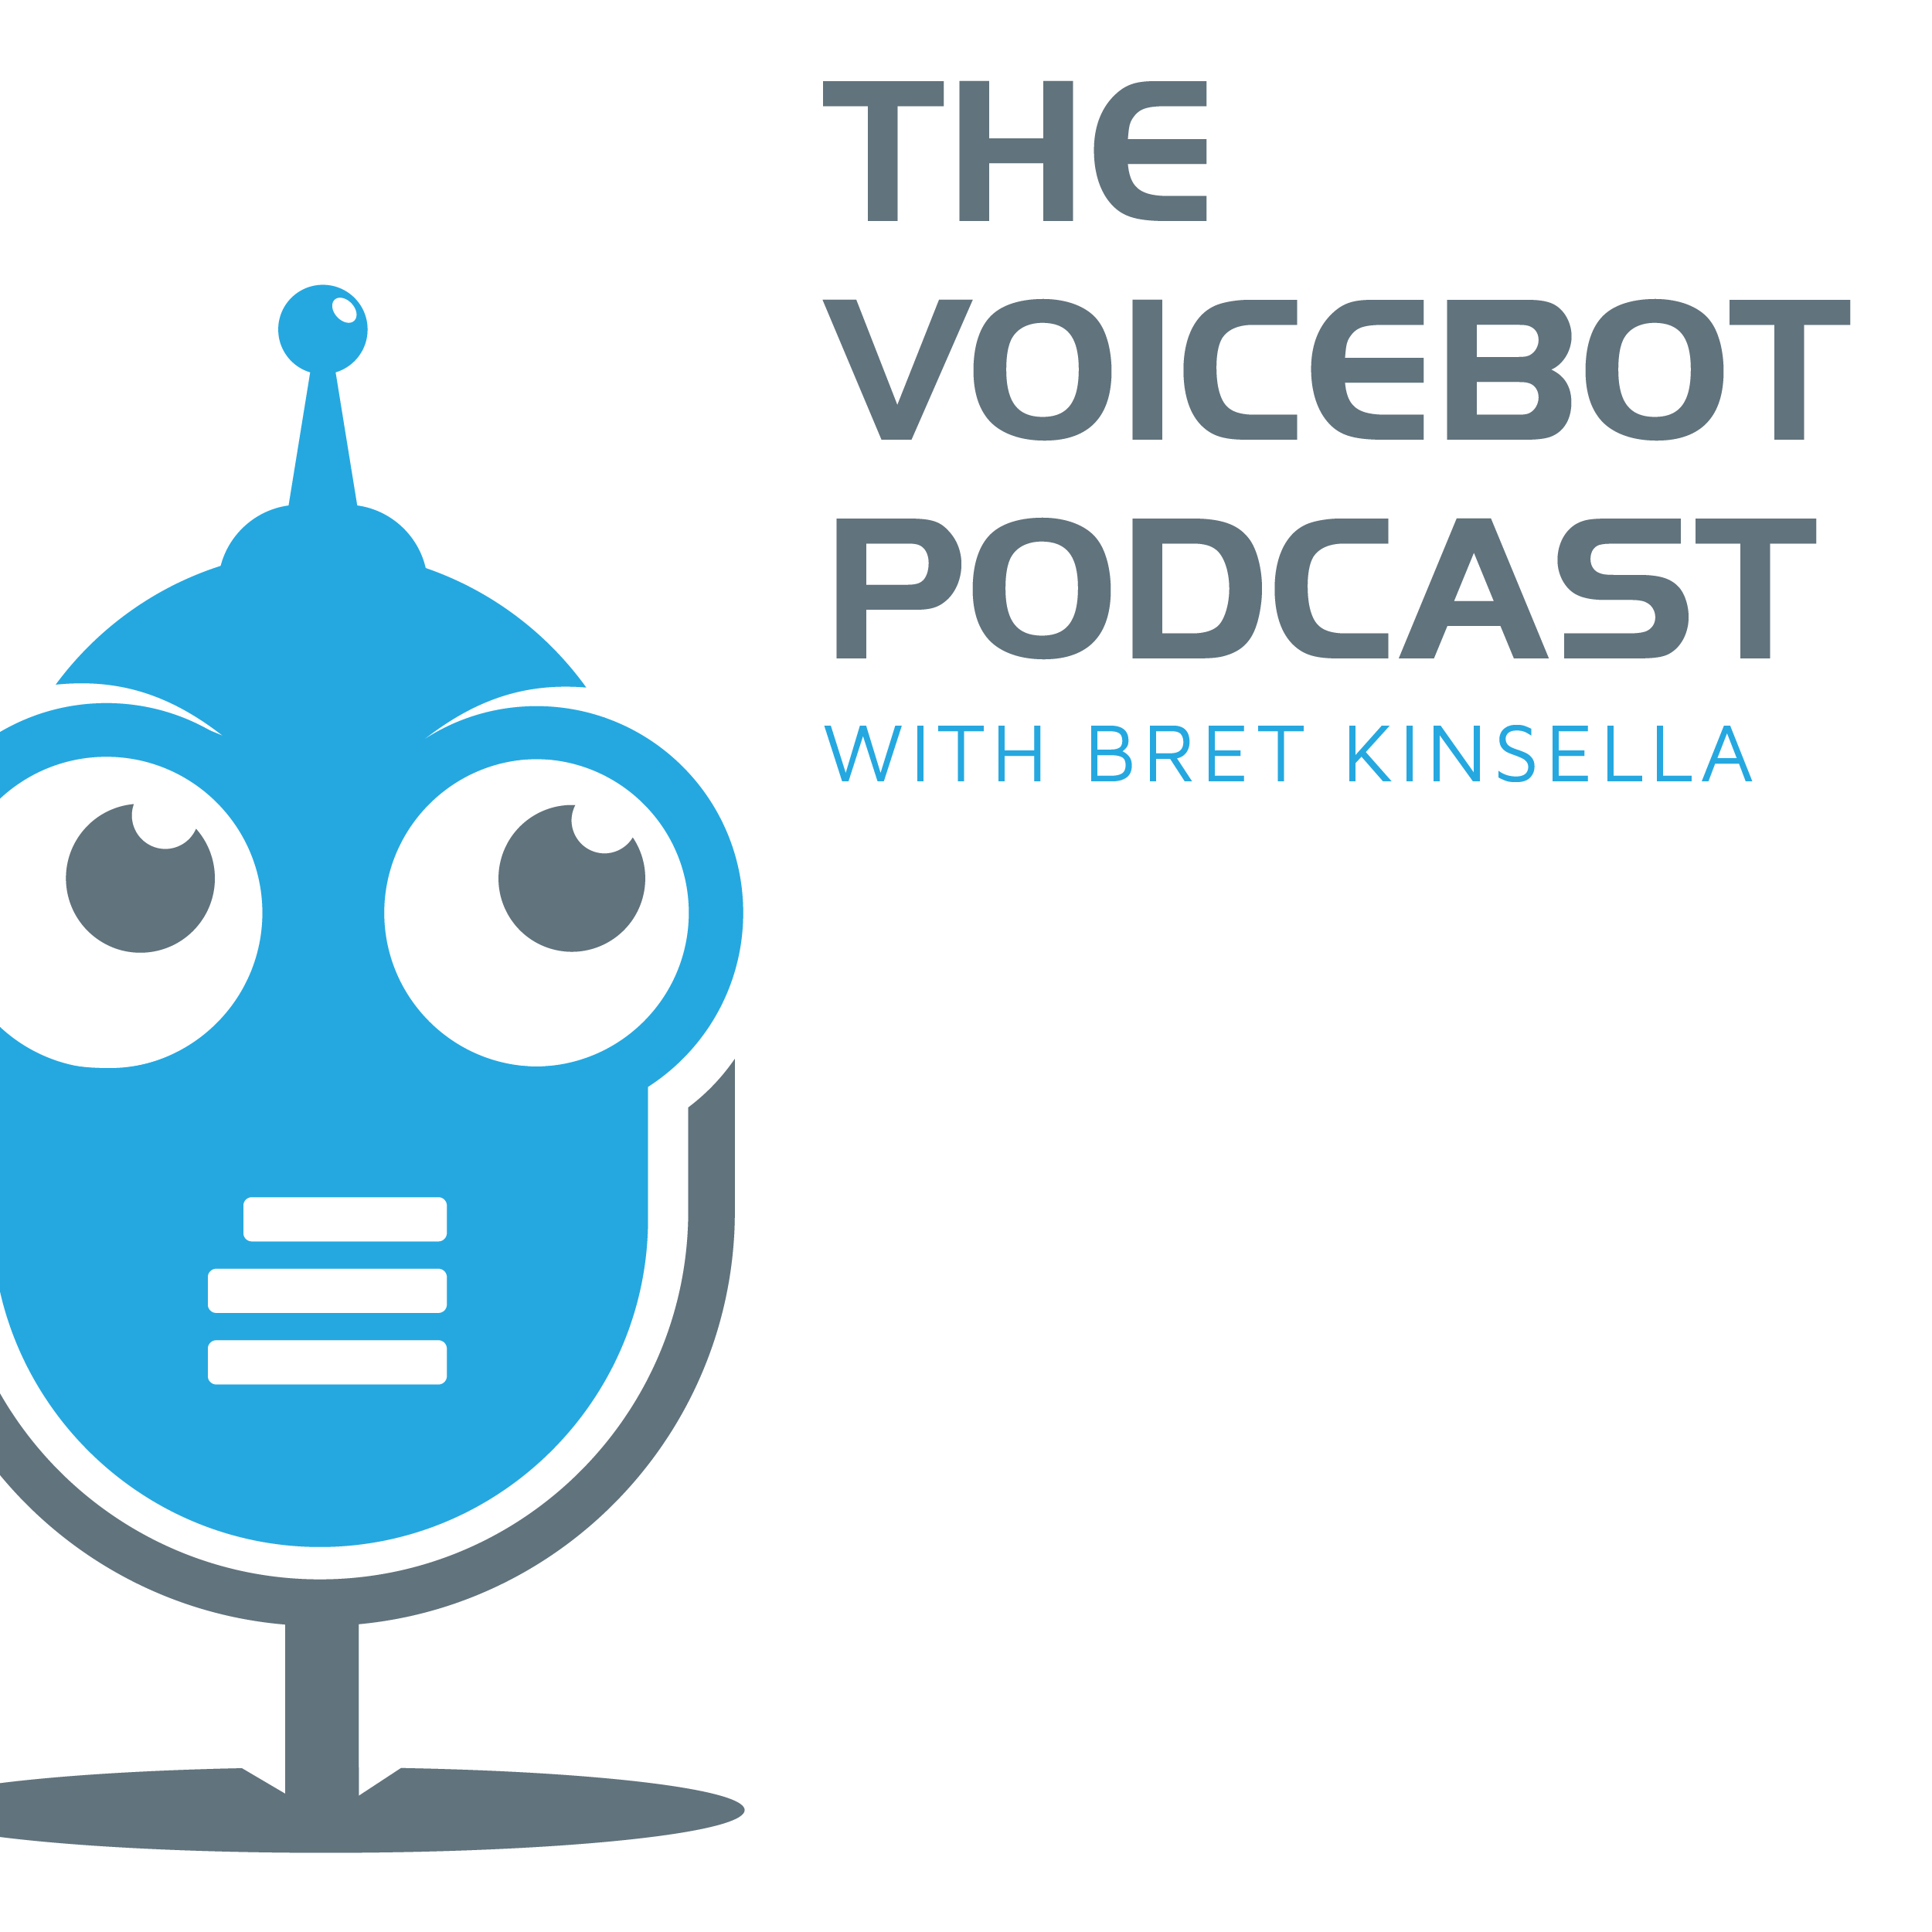 Amazon Alexa Product Launch Event Commentary from Amazon's Daniel Rausch, USA Today, The Spoon, CNET, and Voicebot - Voicebot Podcast Ep 116